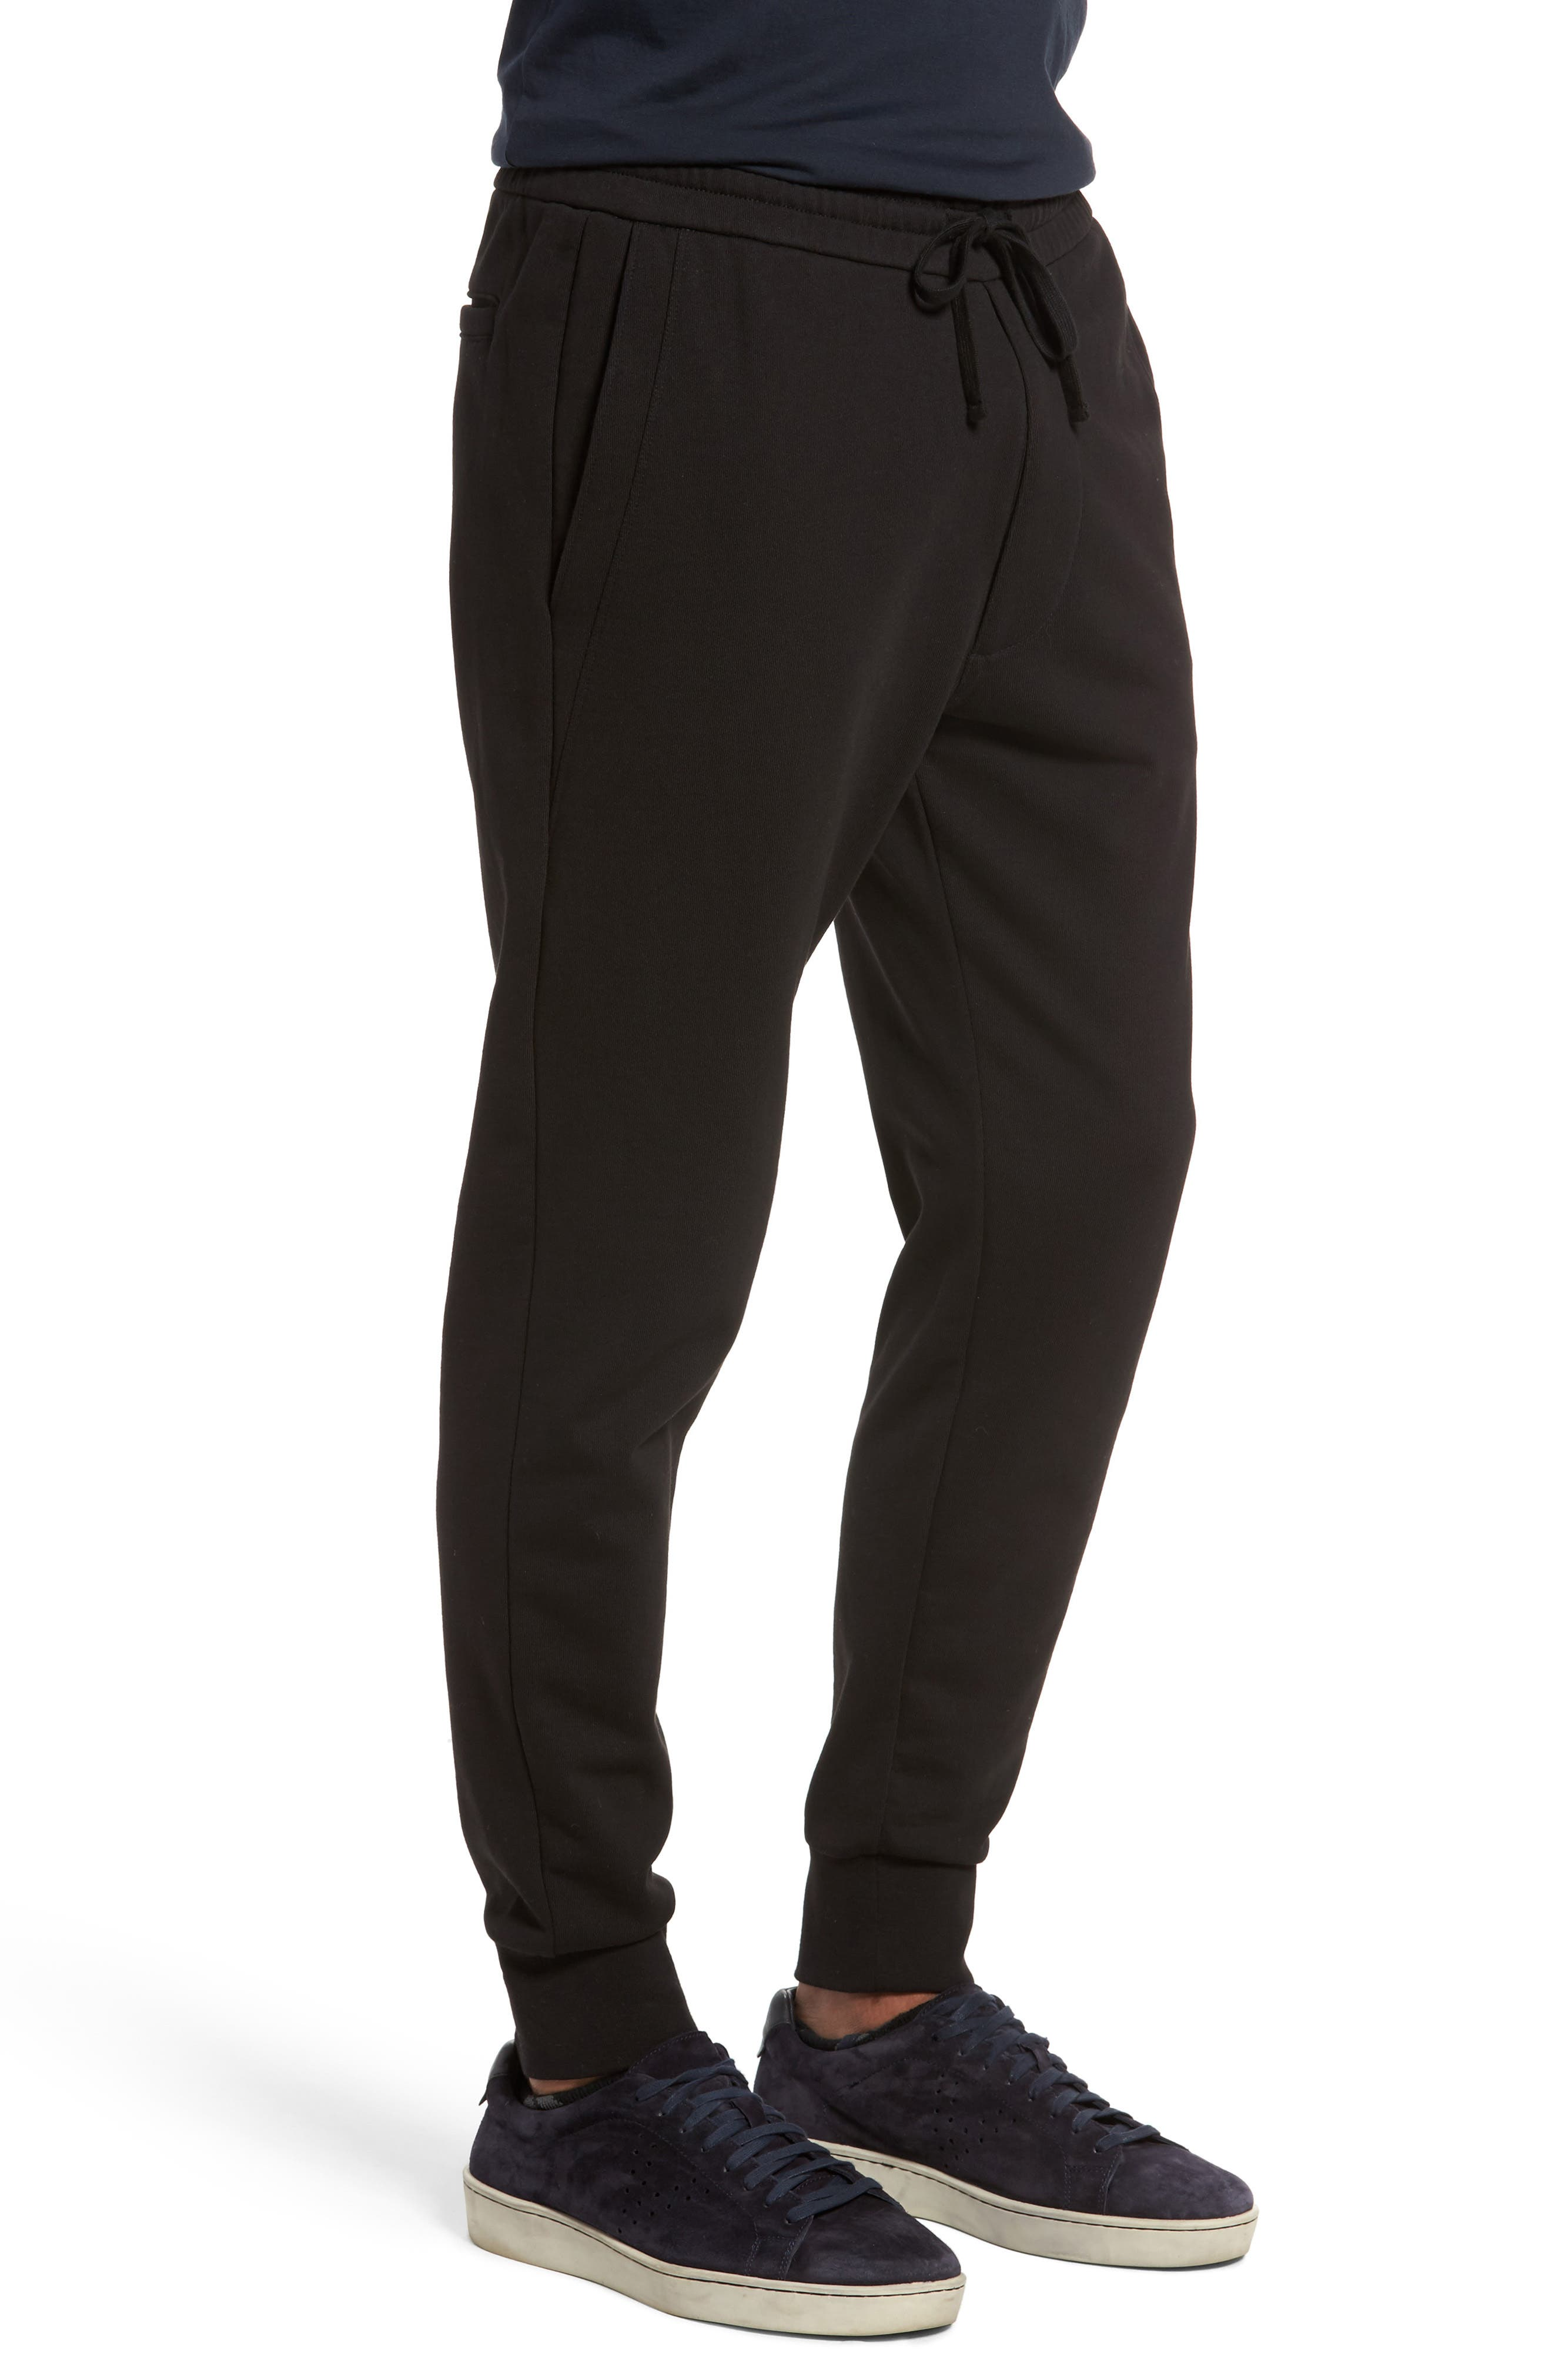 Cotton Sweatpants,                             Alternate thumbnail 3, color,                             Black